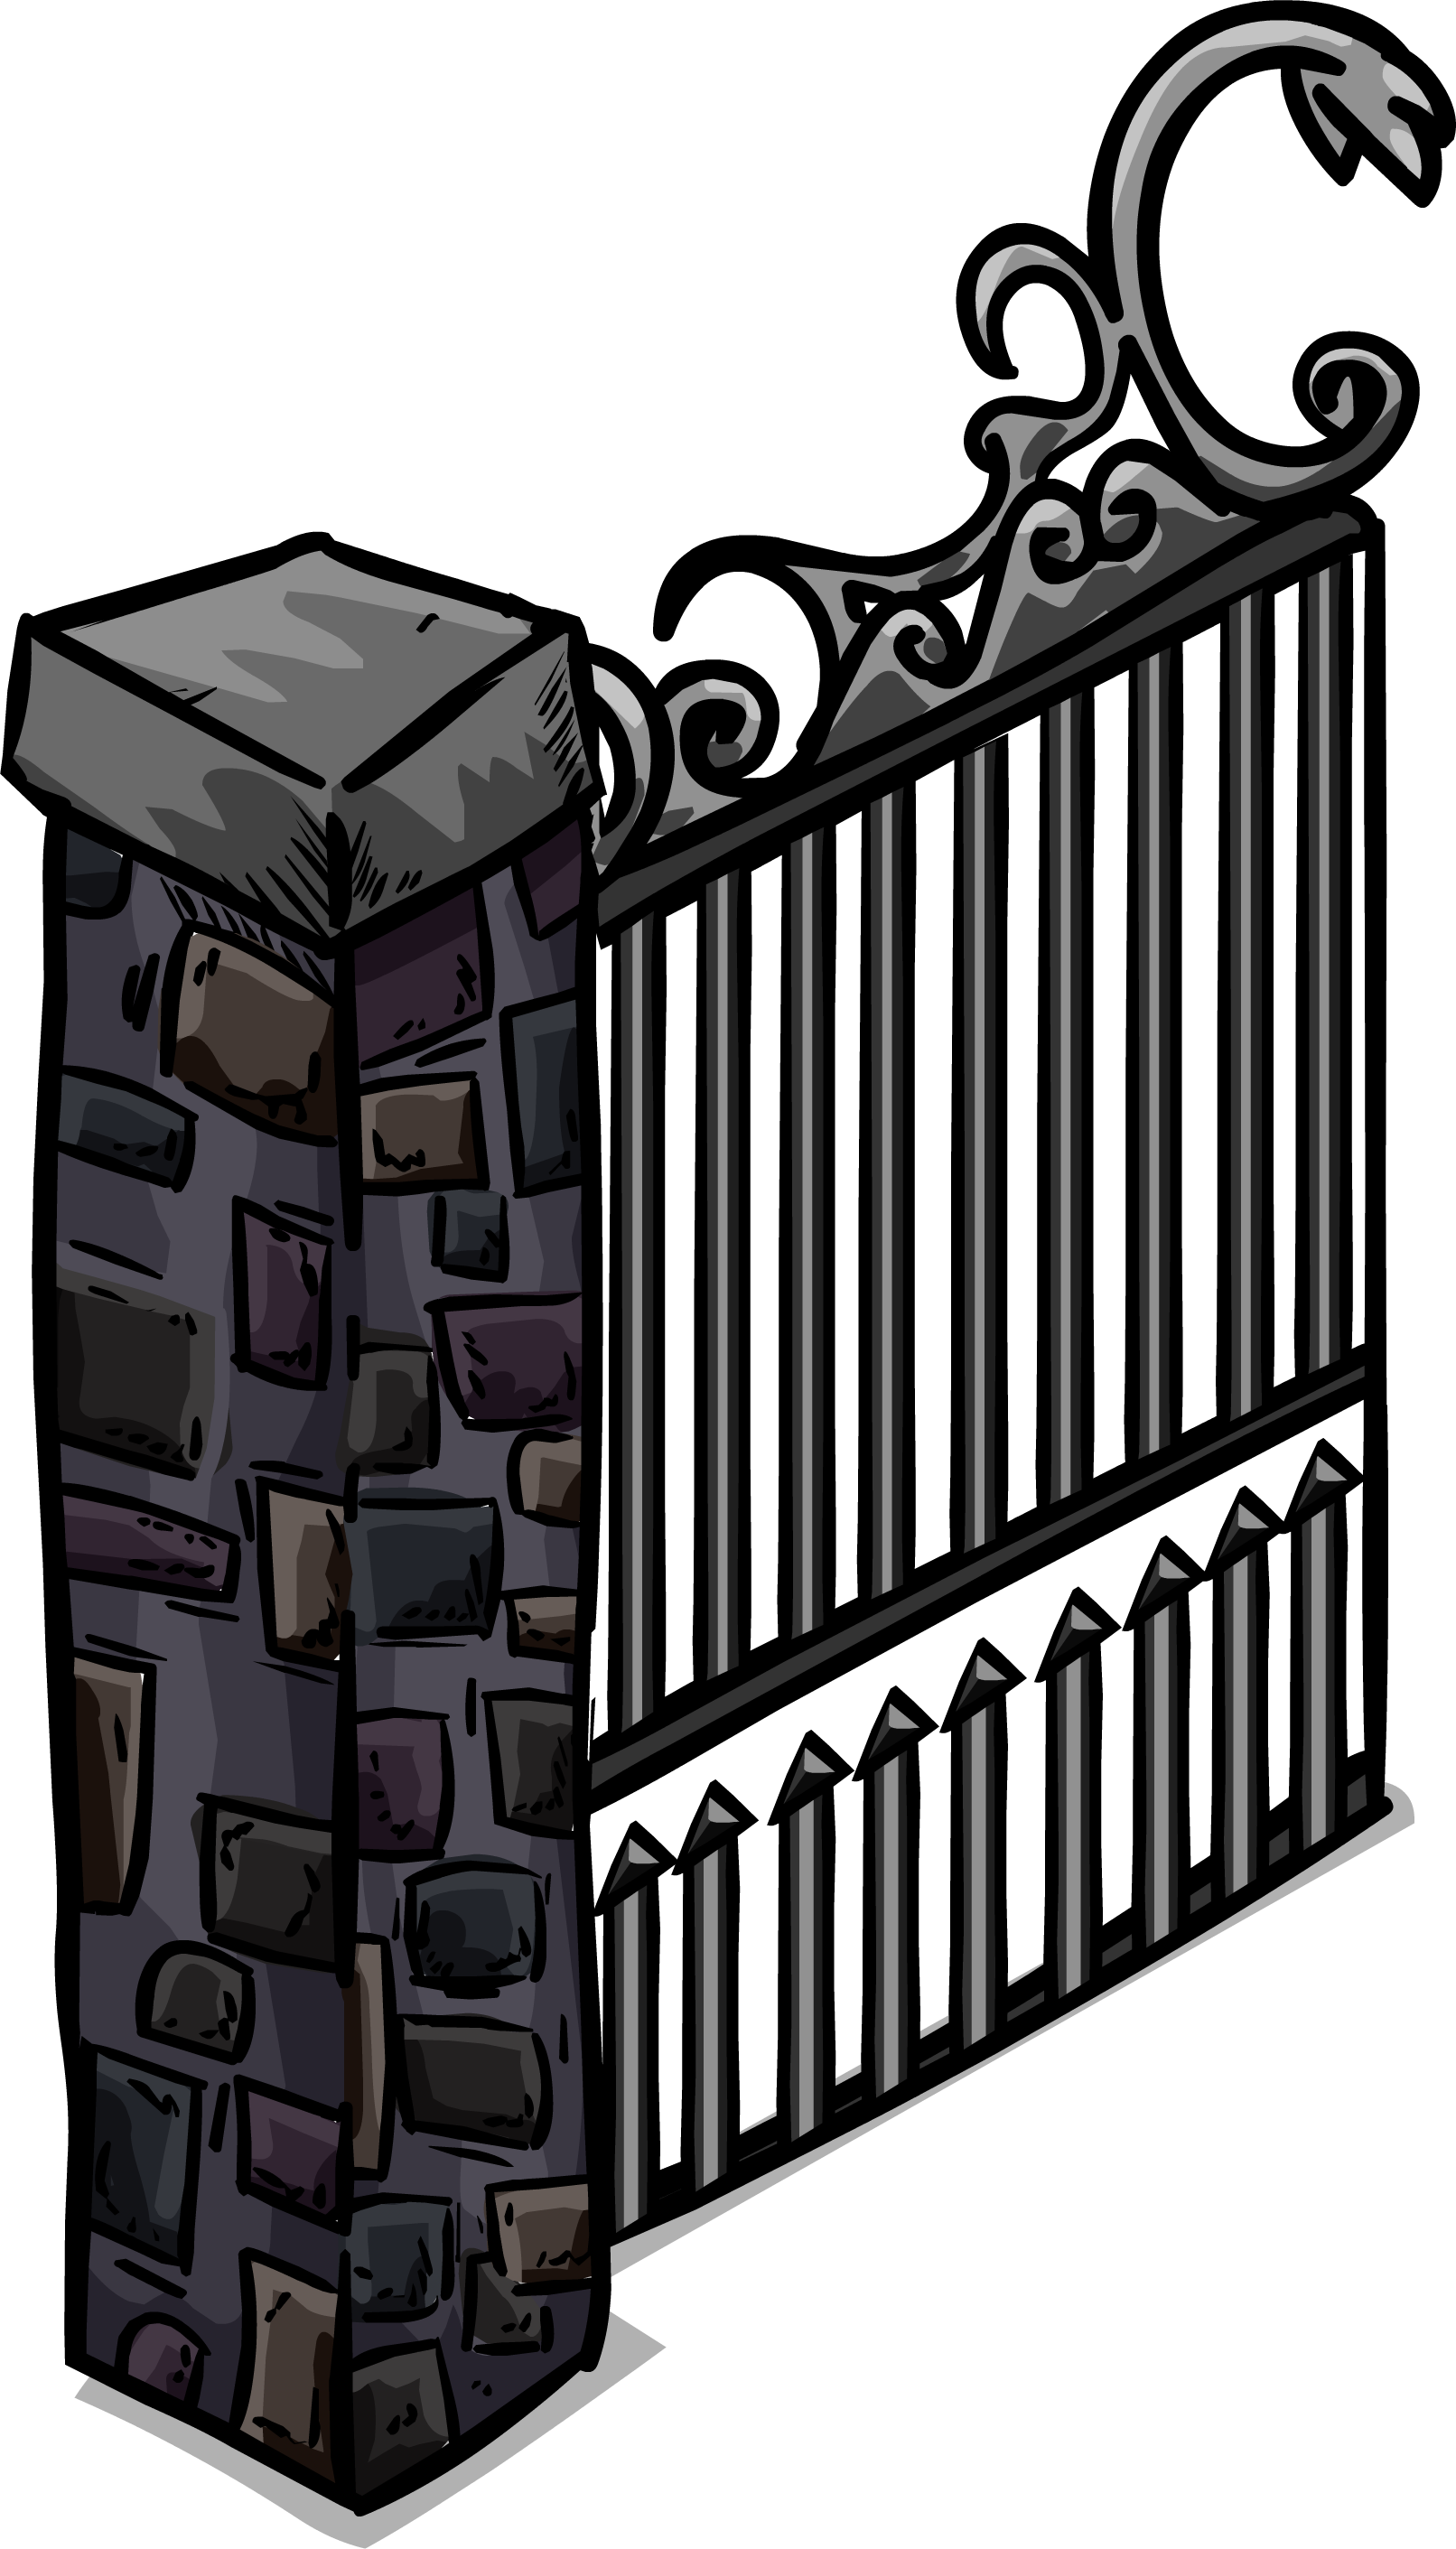 Iron gate png. Image sprite club penguin